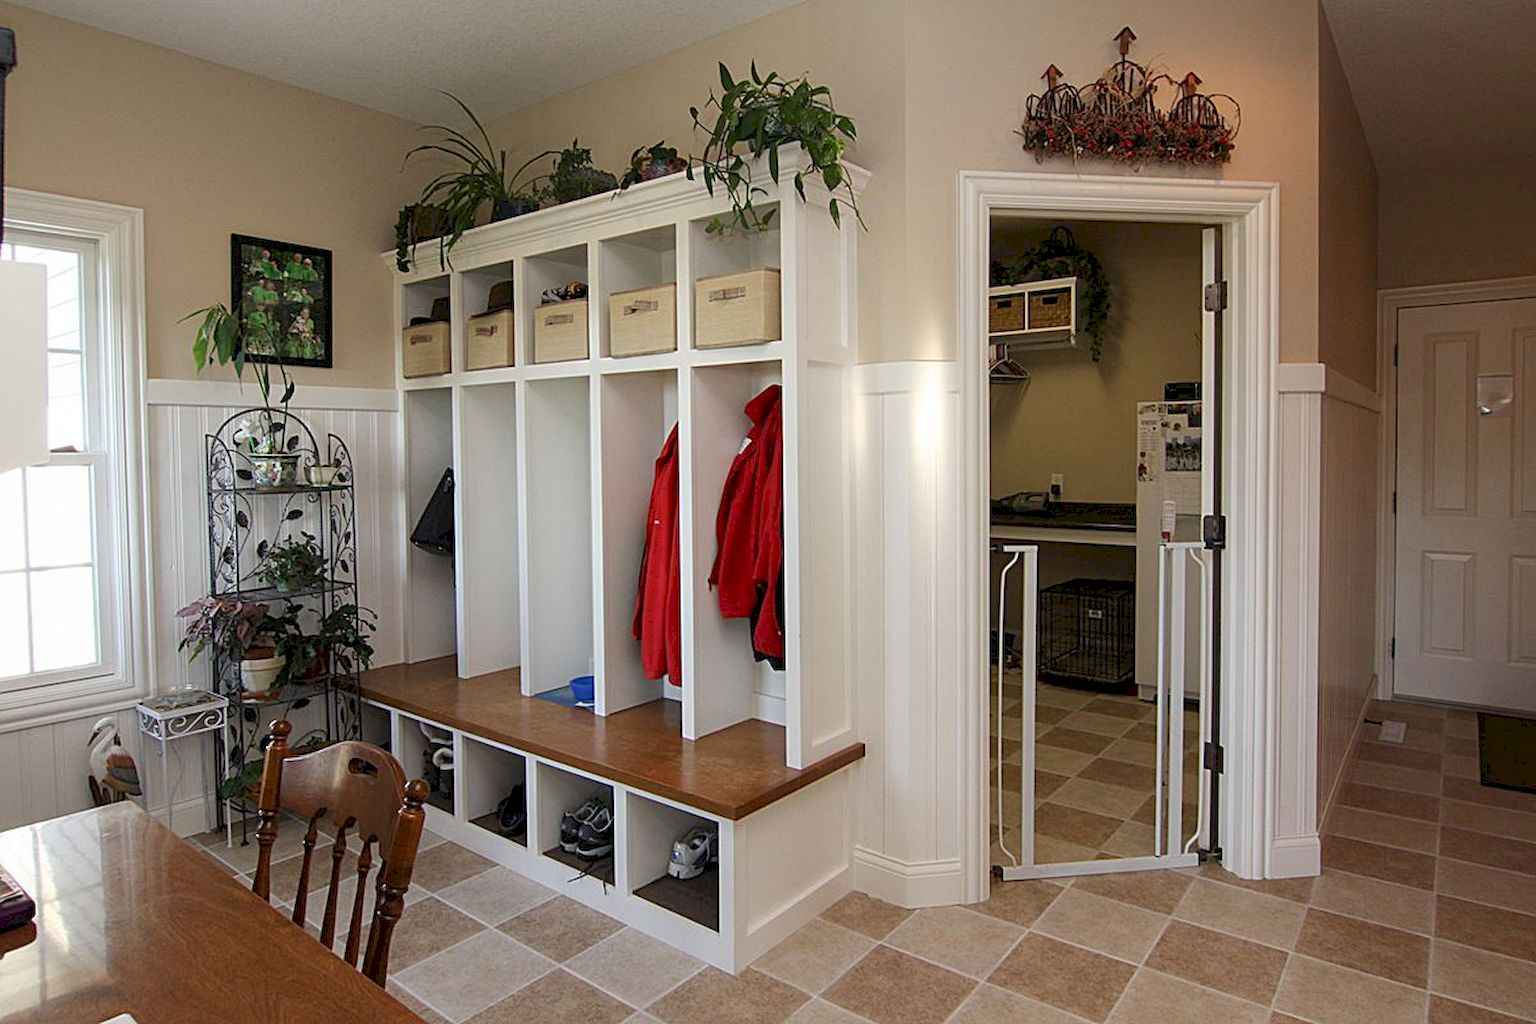 65 Cool Mudroom Design Ideas and Remodel (38)